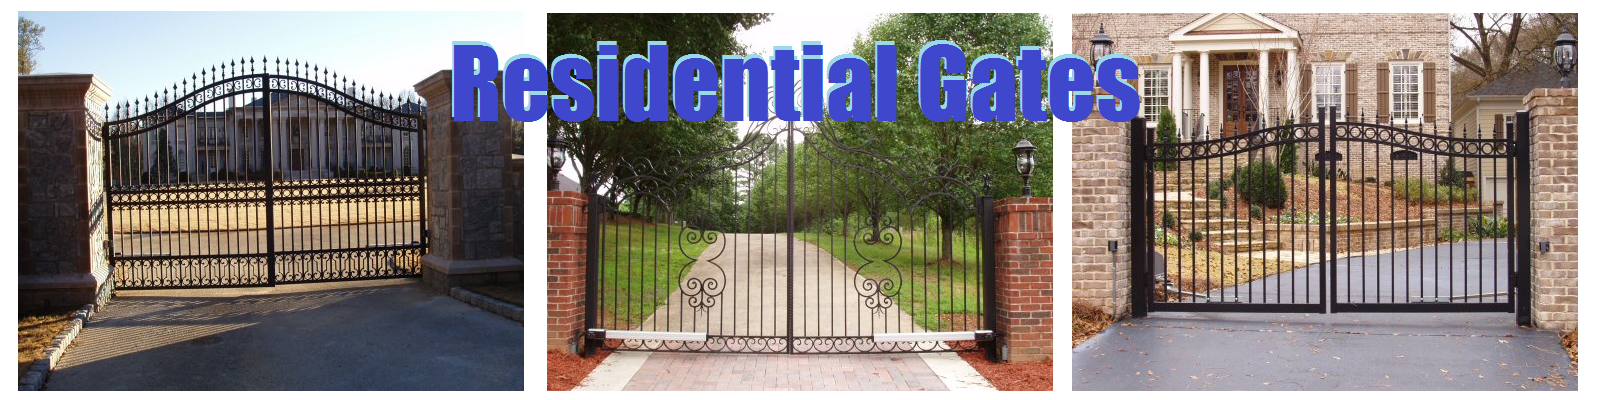 Residential Gates and Fences